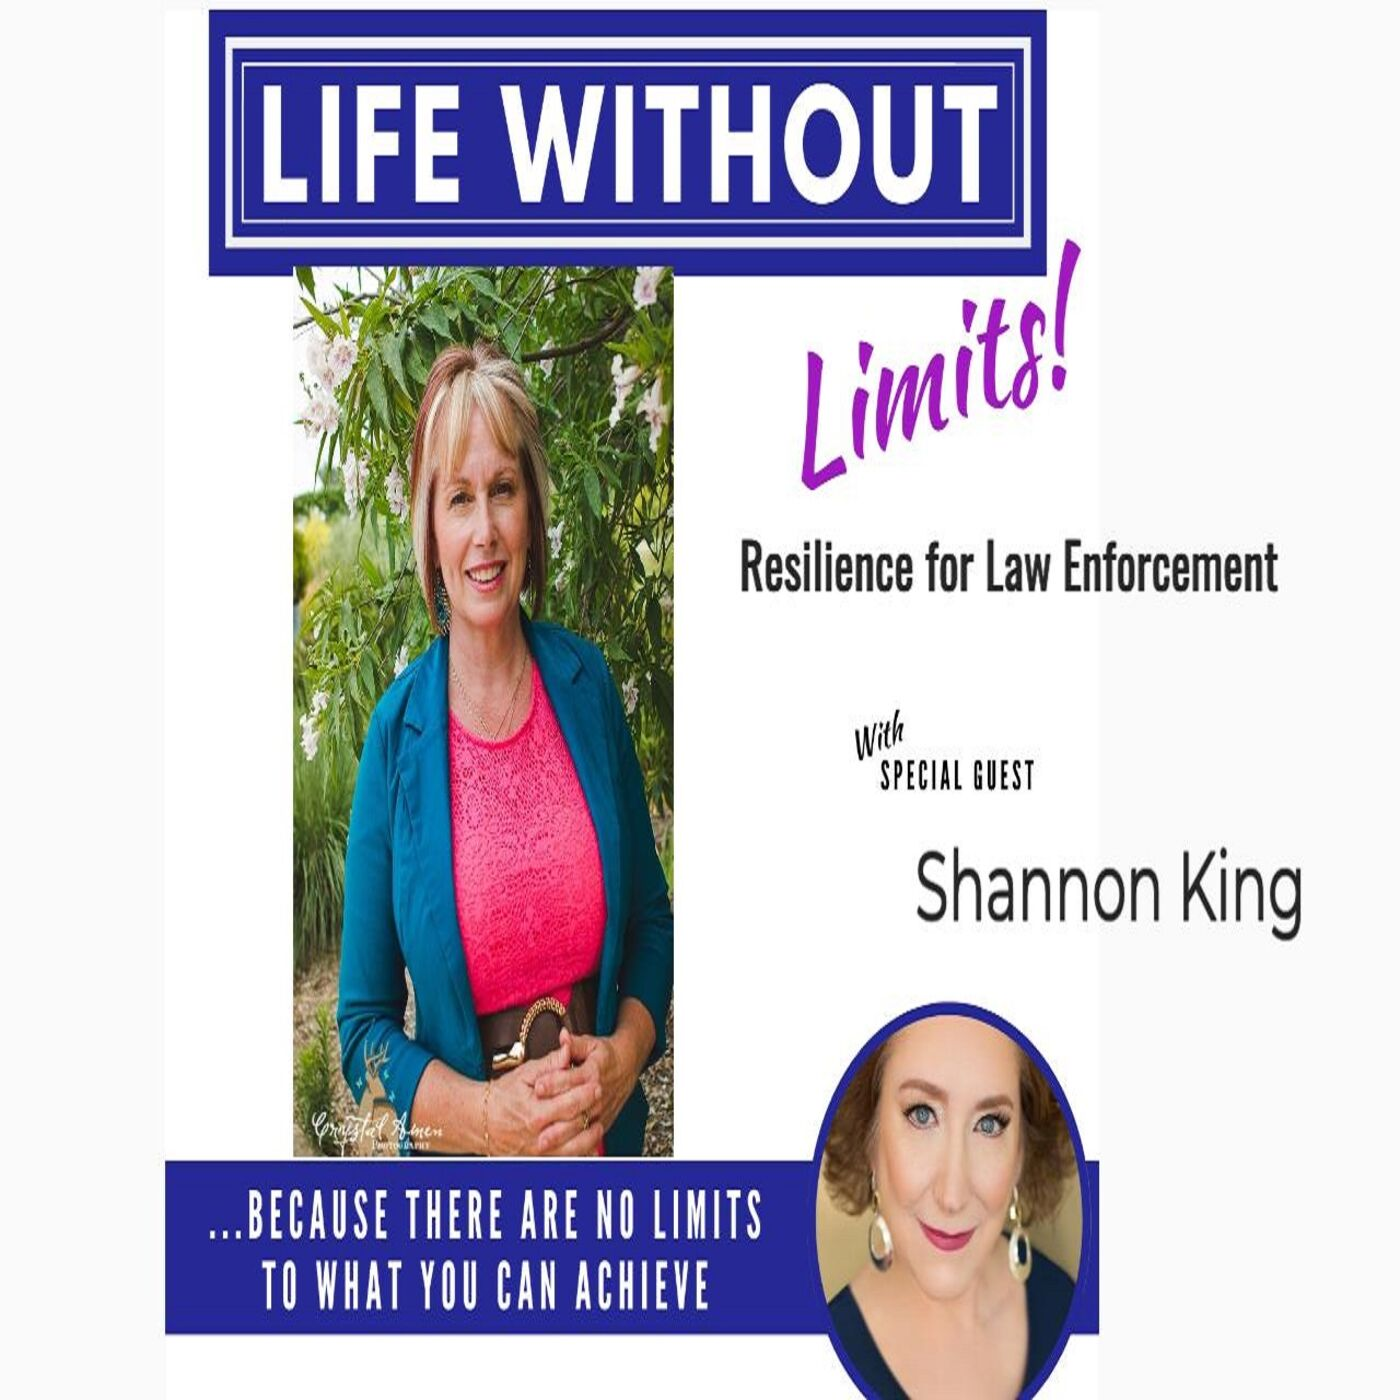 Resilience for Law Enforcement with Shannon King